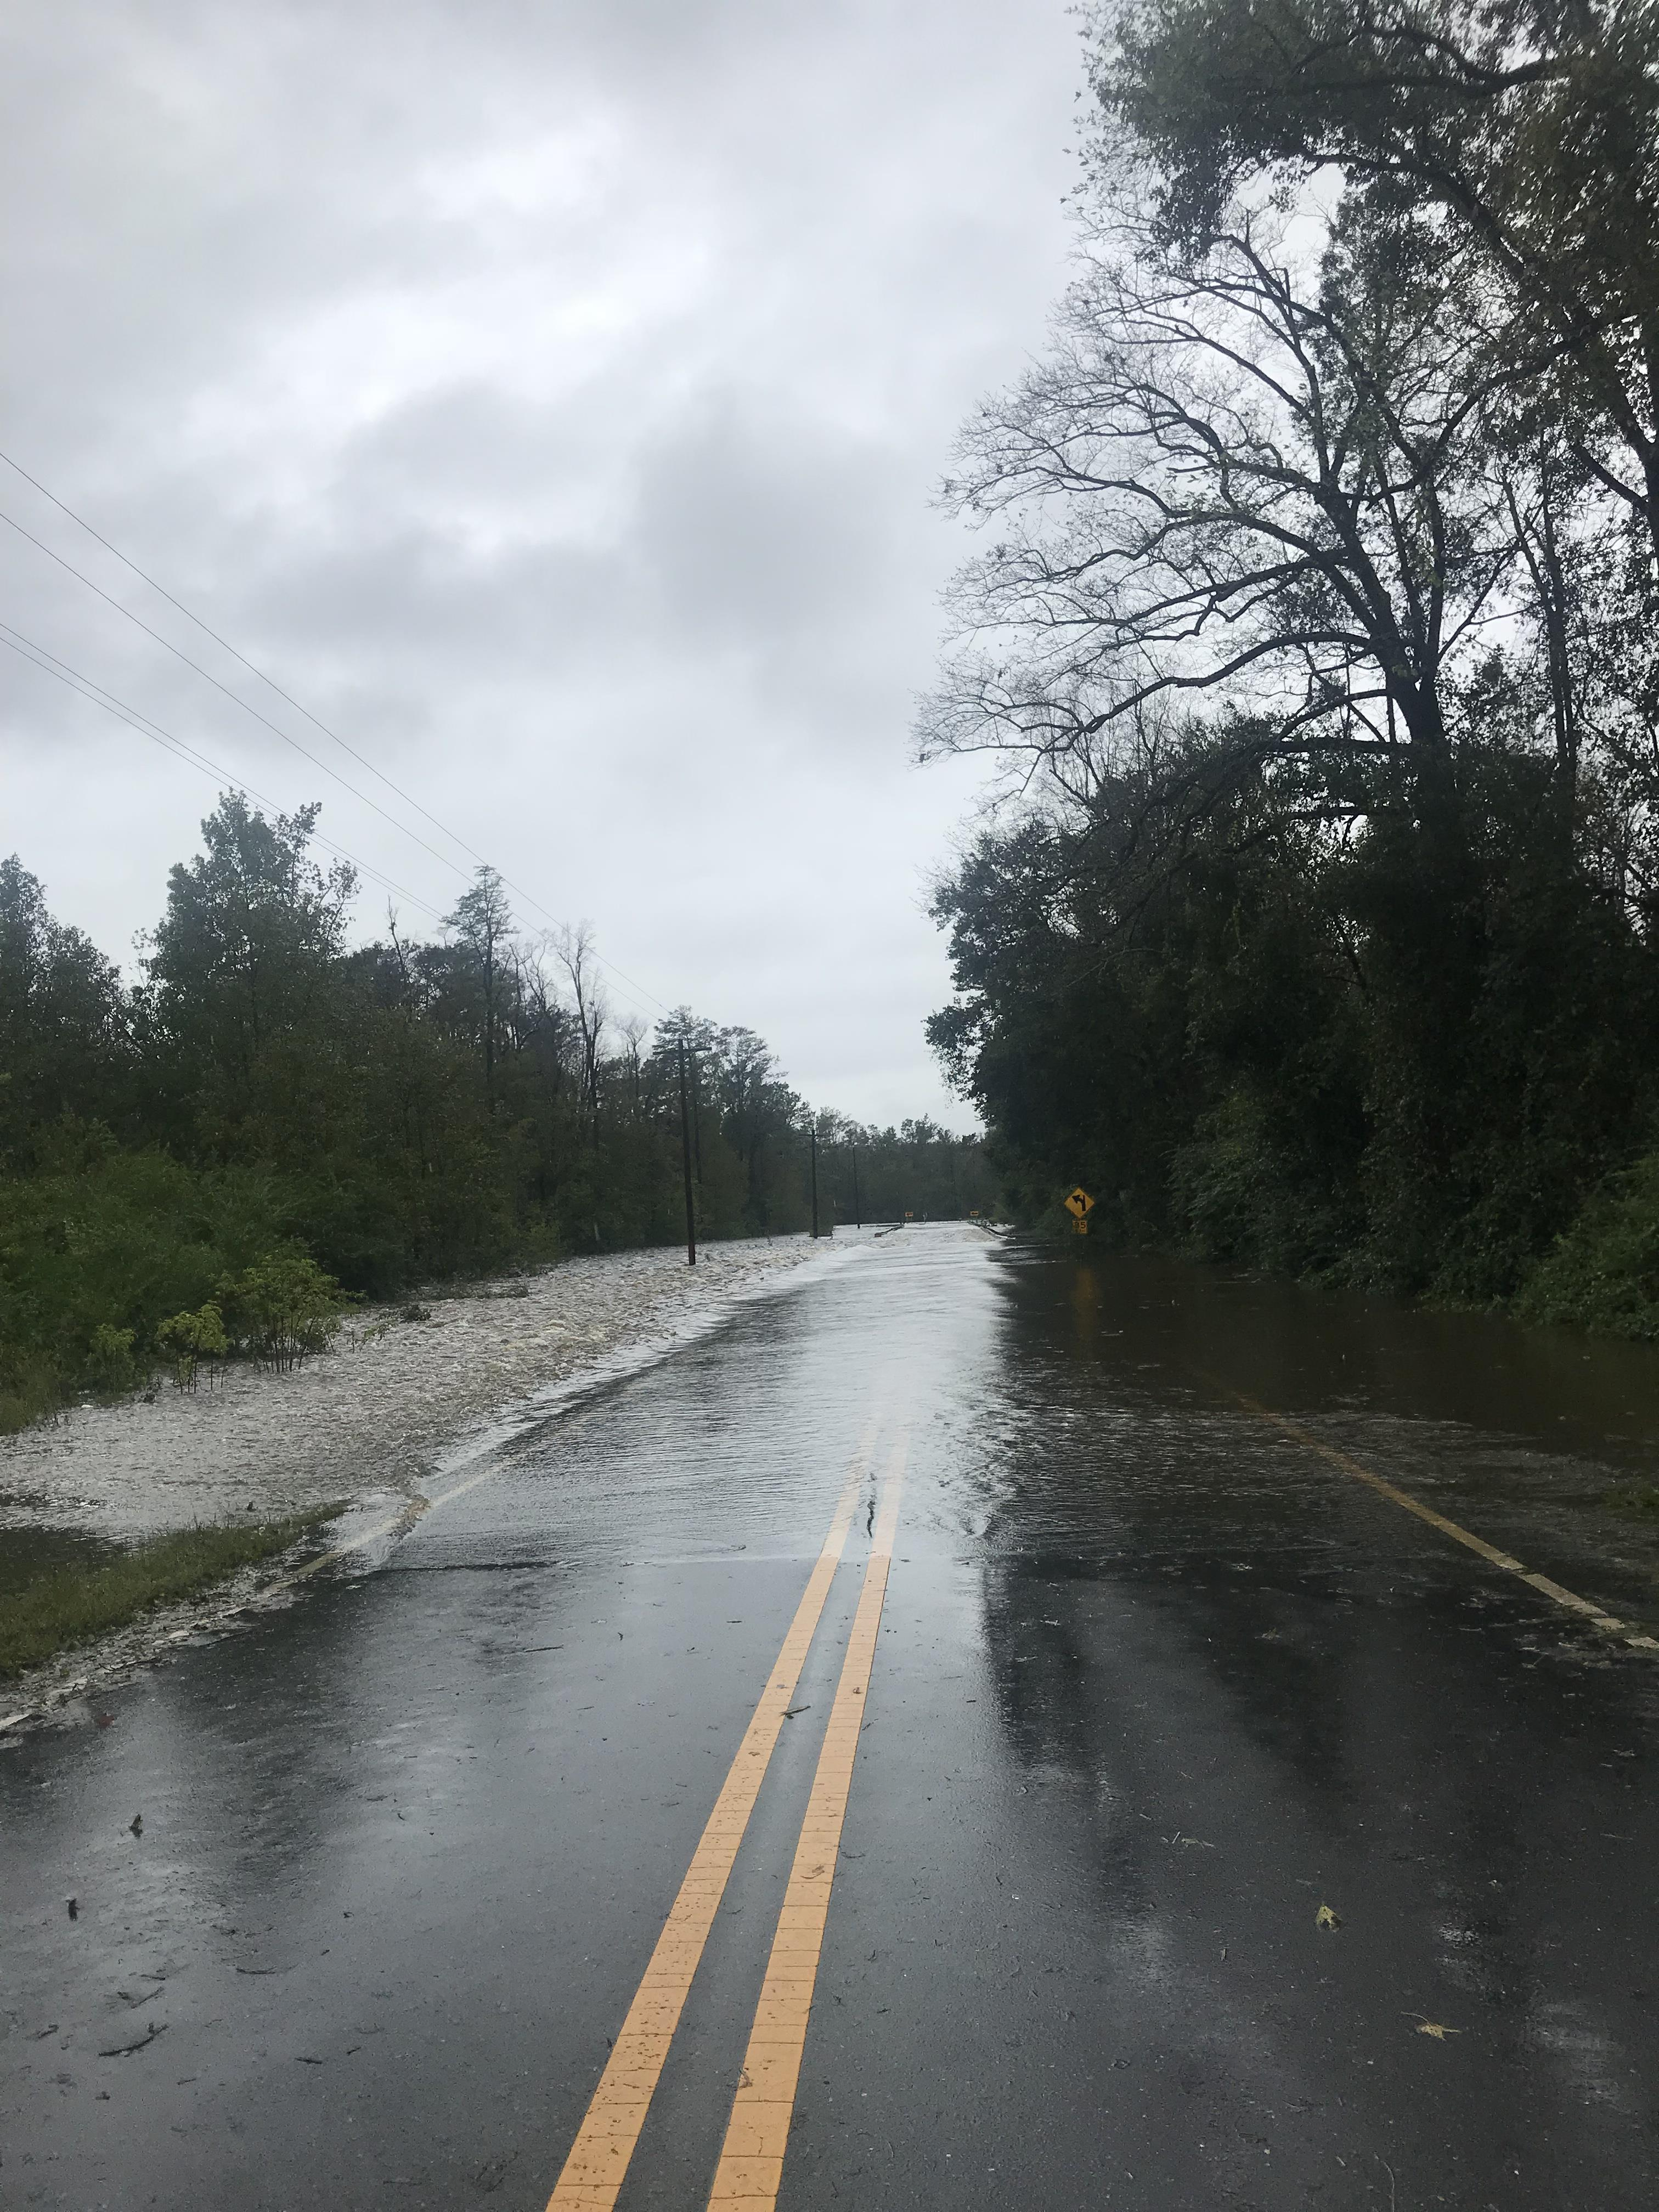 "<div class=""meta image-caption""><div class=""origin-logo origin-image wtvd""><span>WTVD</span></div><span class=""caption-text"">Minnie Hall Road Bridge is flooded near Salemburg, N.C. in Sampson County. (ABC11 Eyewitness - Candis Tyndall)</span></div>"